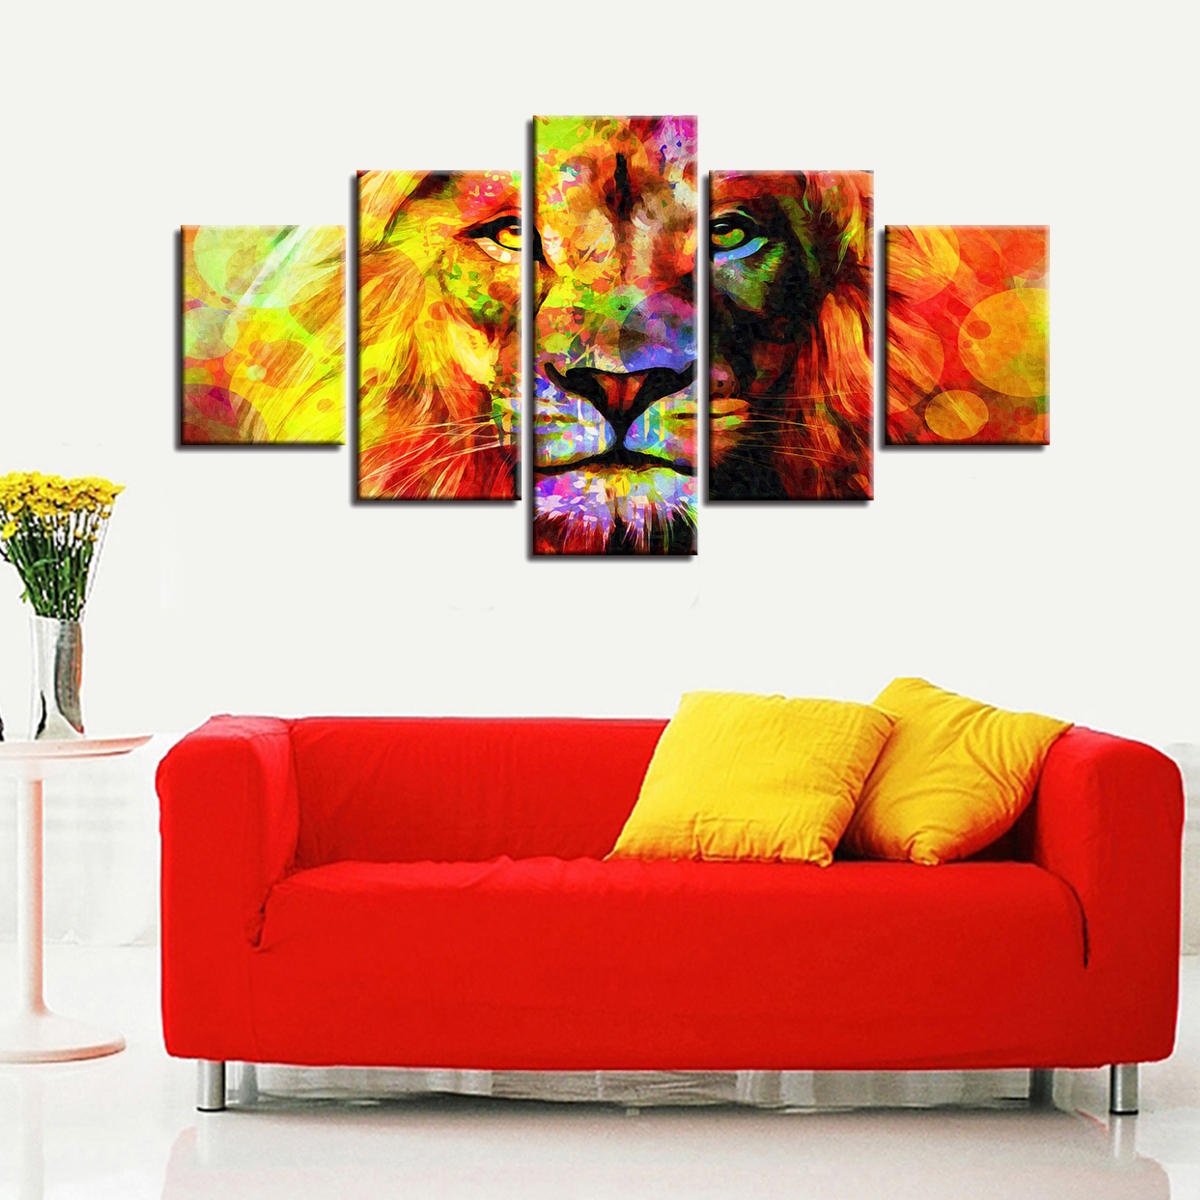 Unframed Colorful Lion Modern Art Canvas Paintings Picture Print Home Wall Decor